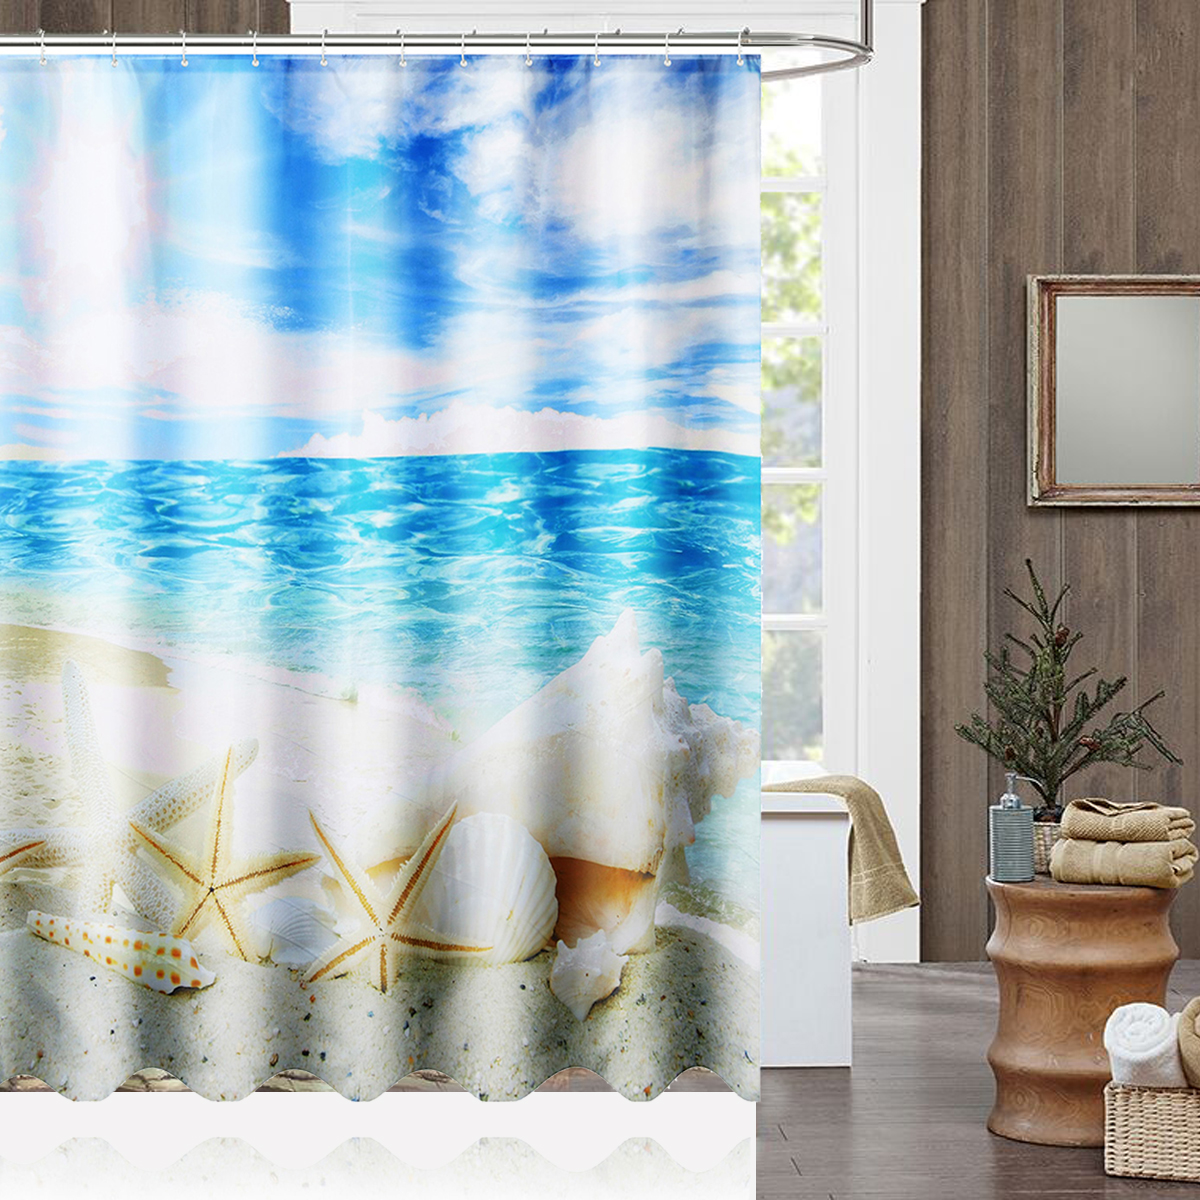 Us 11 7 17 Off 180x180cm Sunshine Beach Shower Curtain Seashell Polyester Waterproof Fabric Ocean Washable Bathroom Home Decor In Shower Curtains